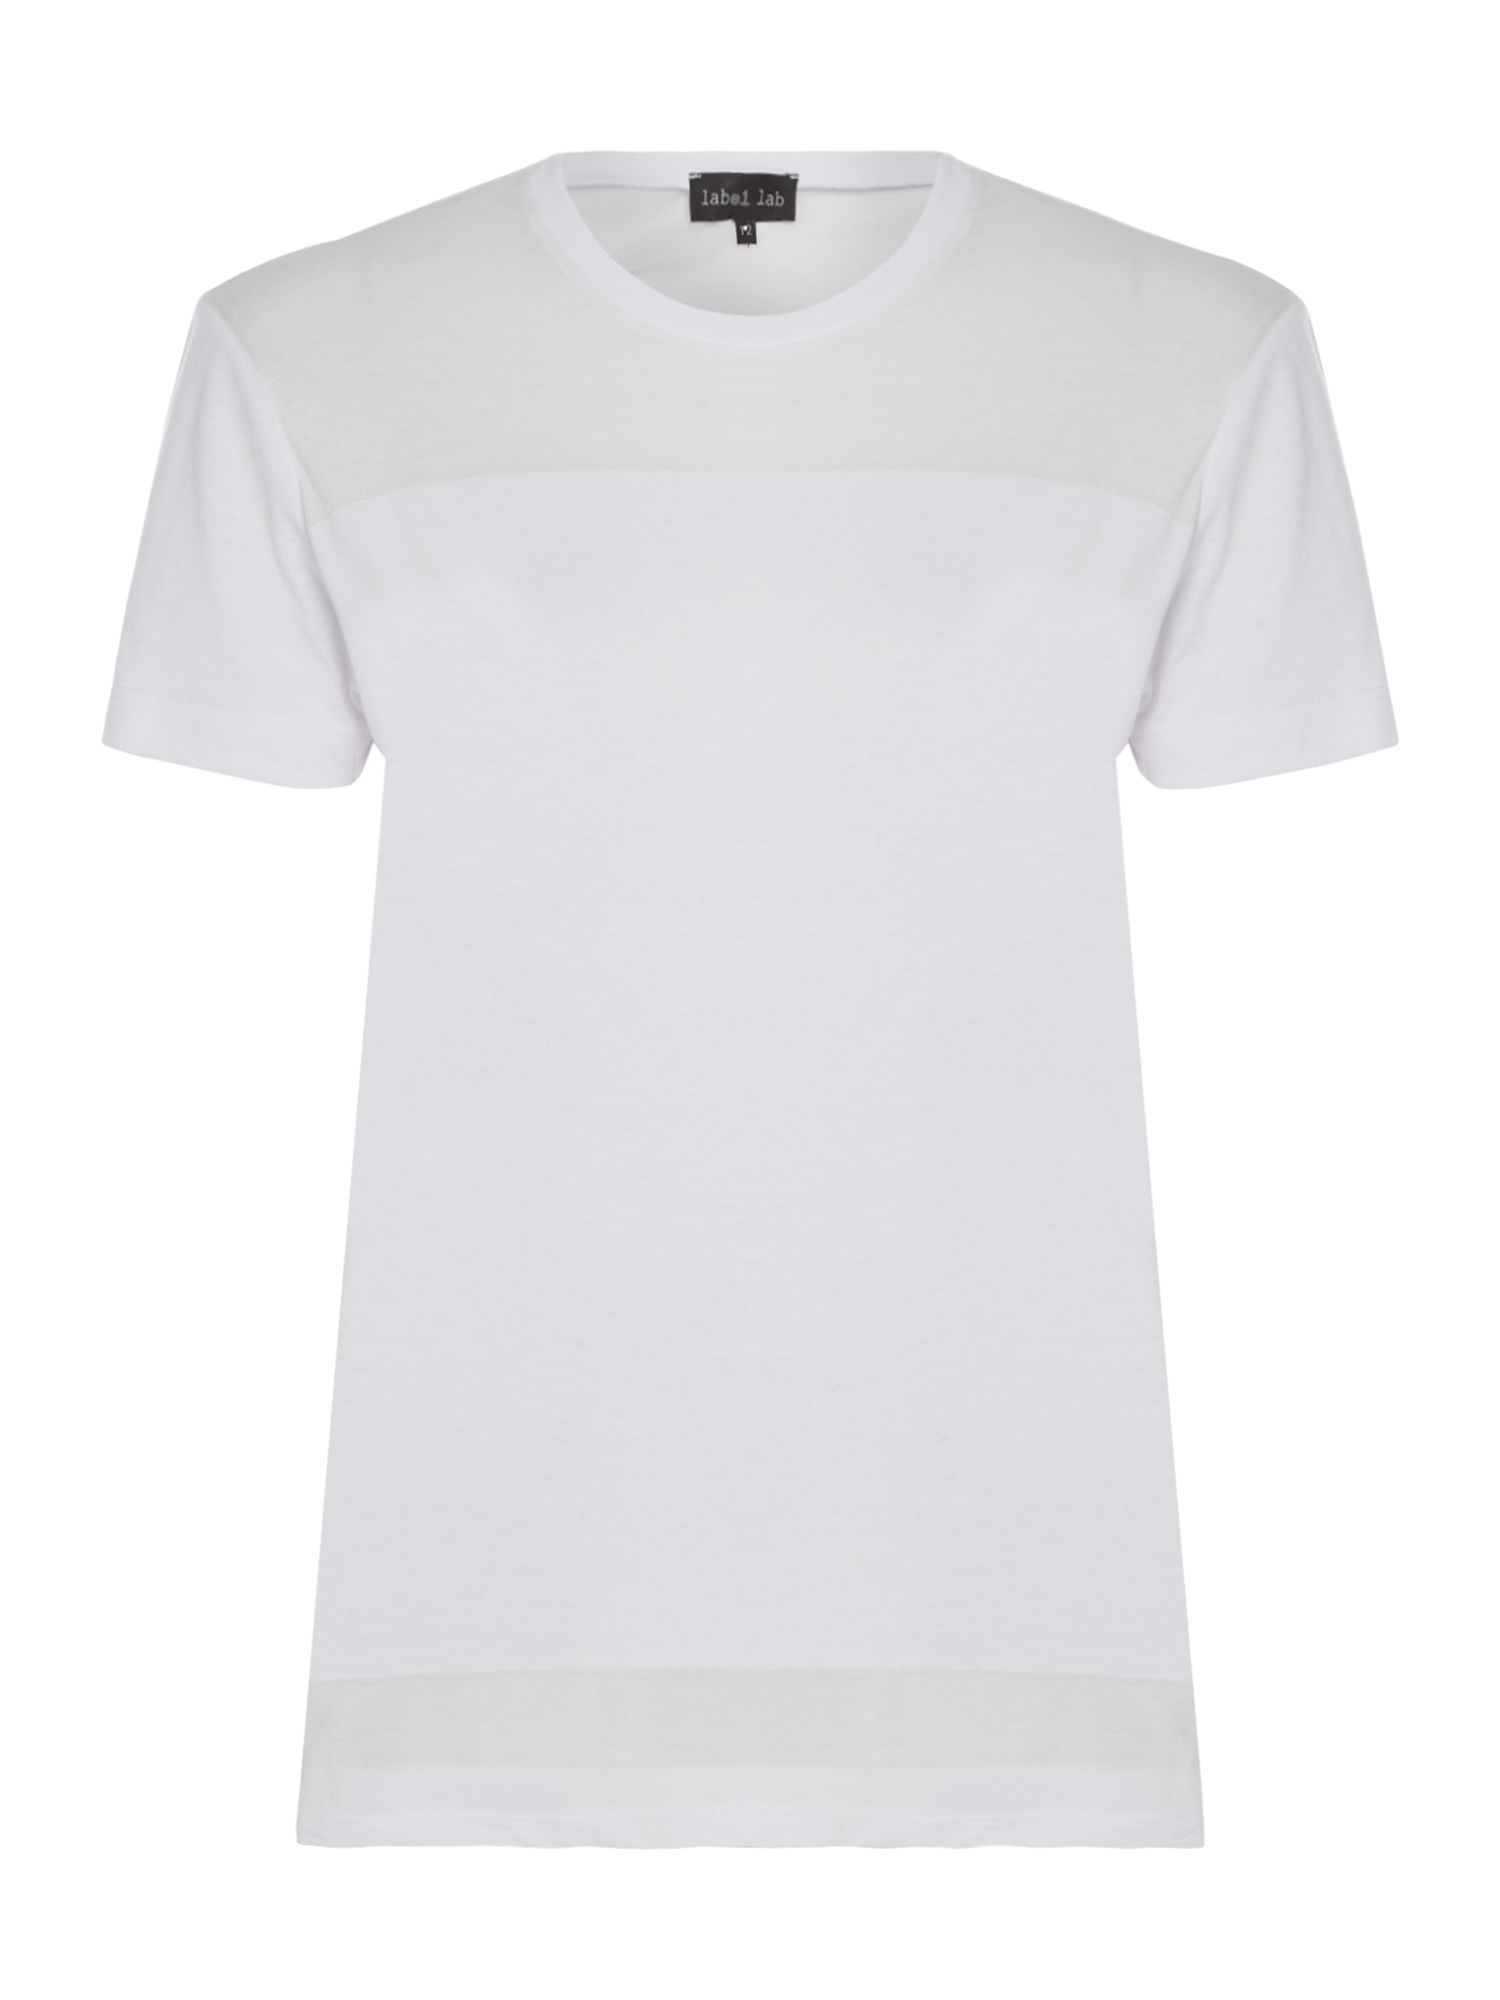 Label Lab Burnout Stripe Tee, White